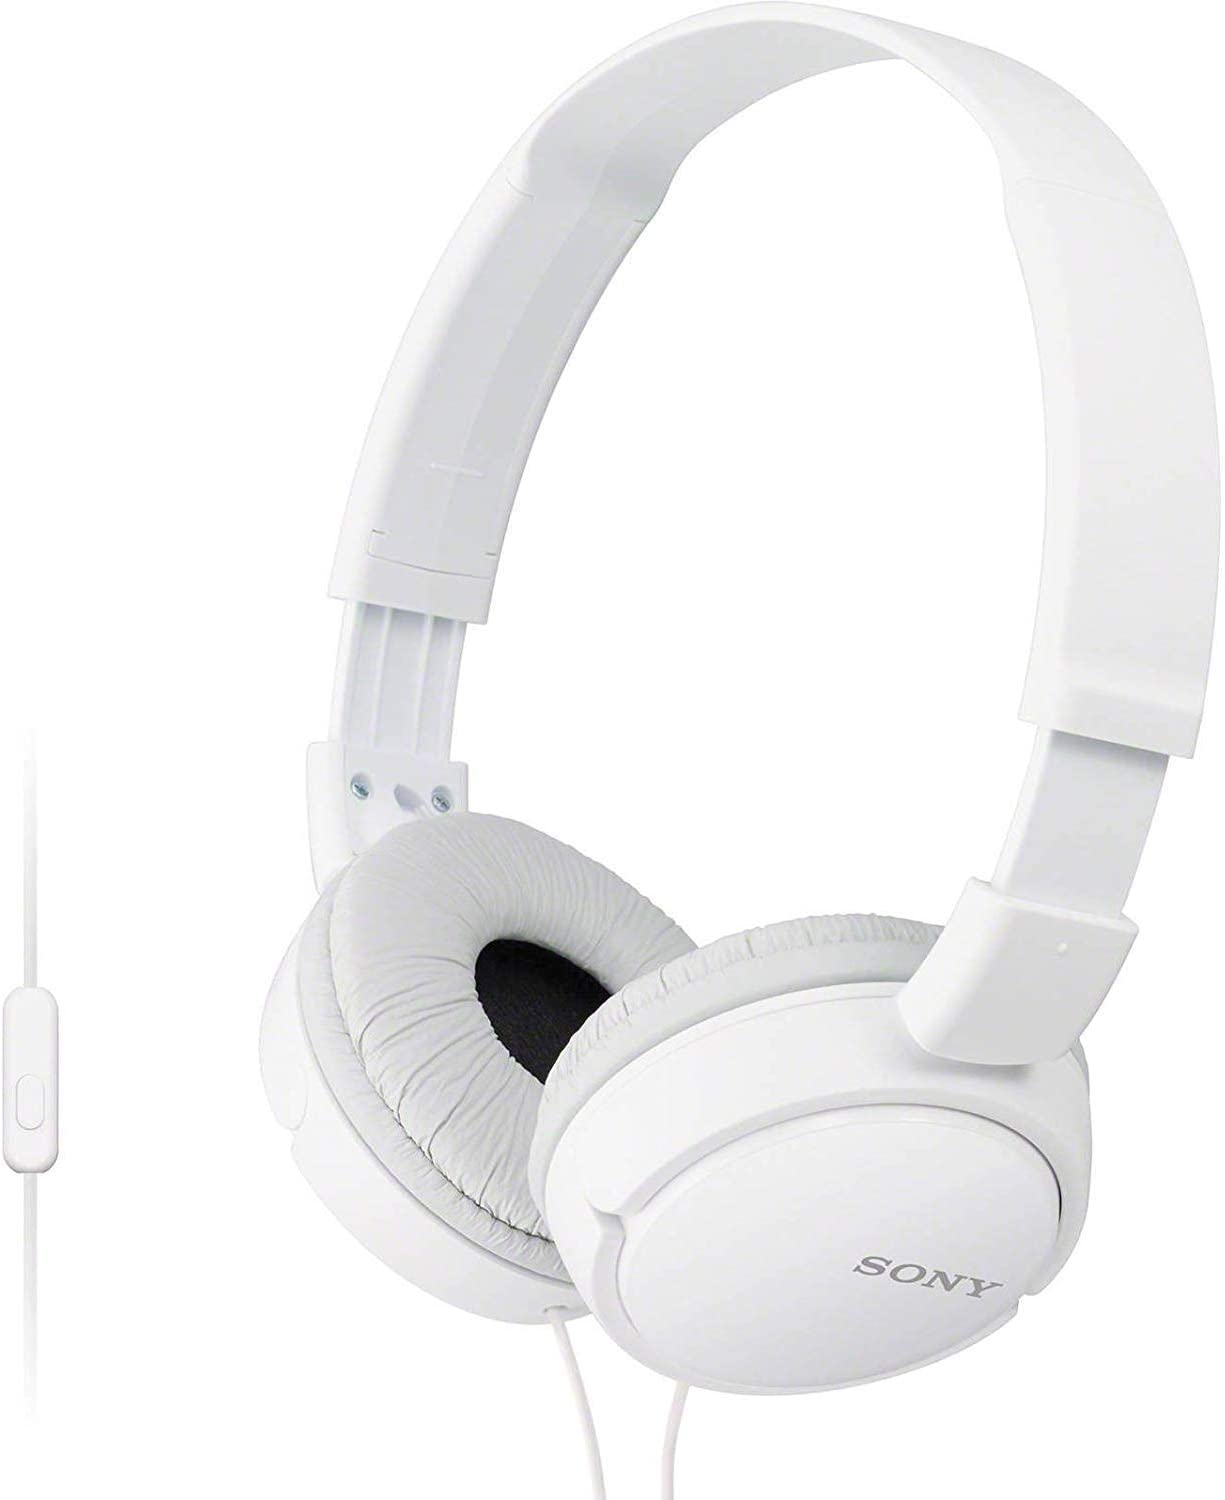 Sony Premium Lightweight Extra Bass Stereo Headphones with Universal in-line Microphone and Remote for Apple iPhone/Android Smartphone (White)